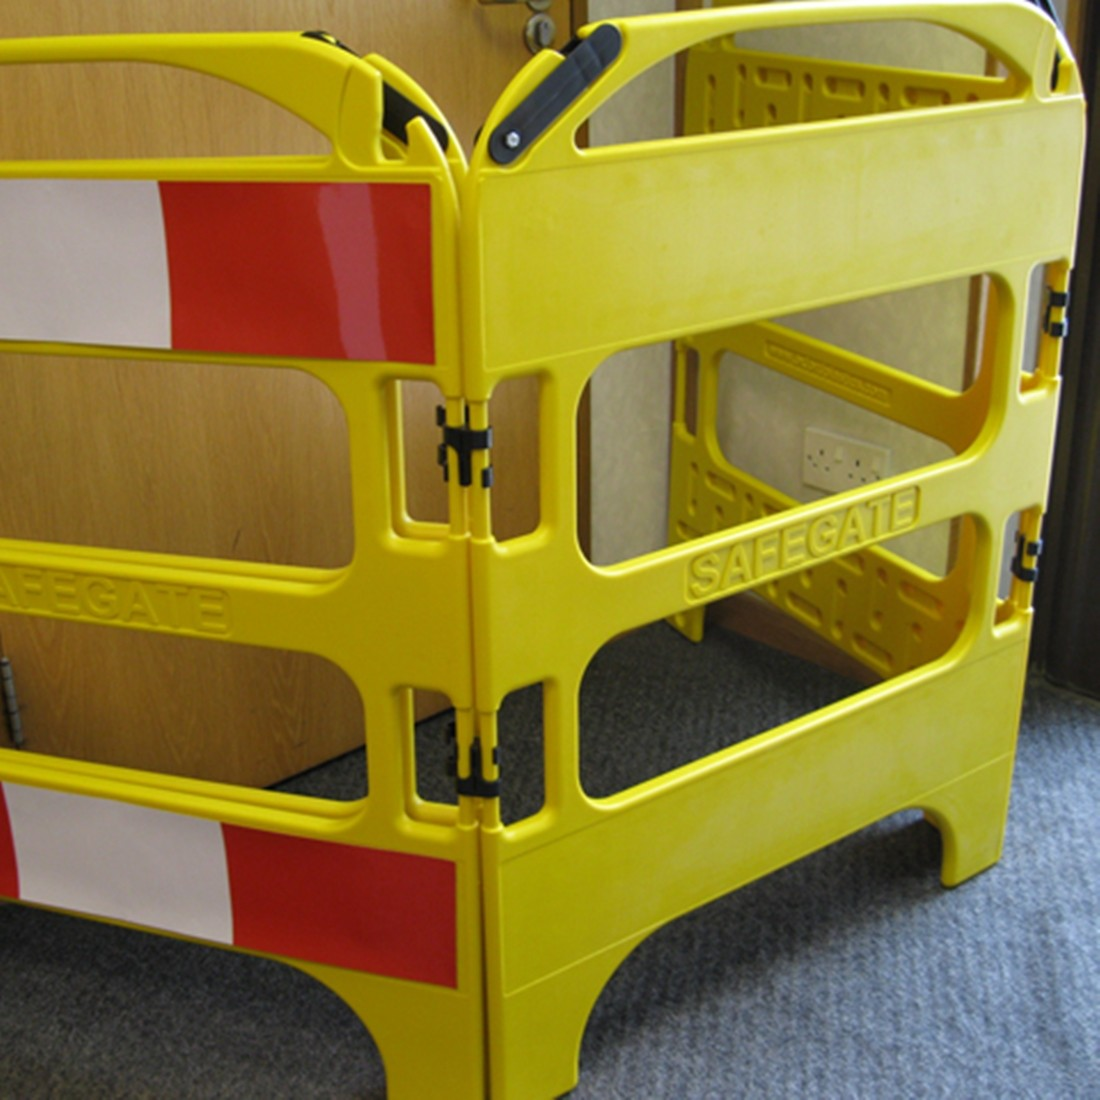 Oxford Safegate Folding Communication Manhole Plastic Barrier - Yellow